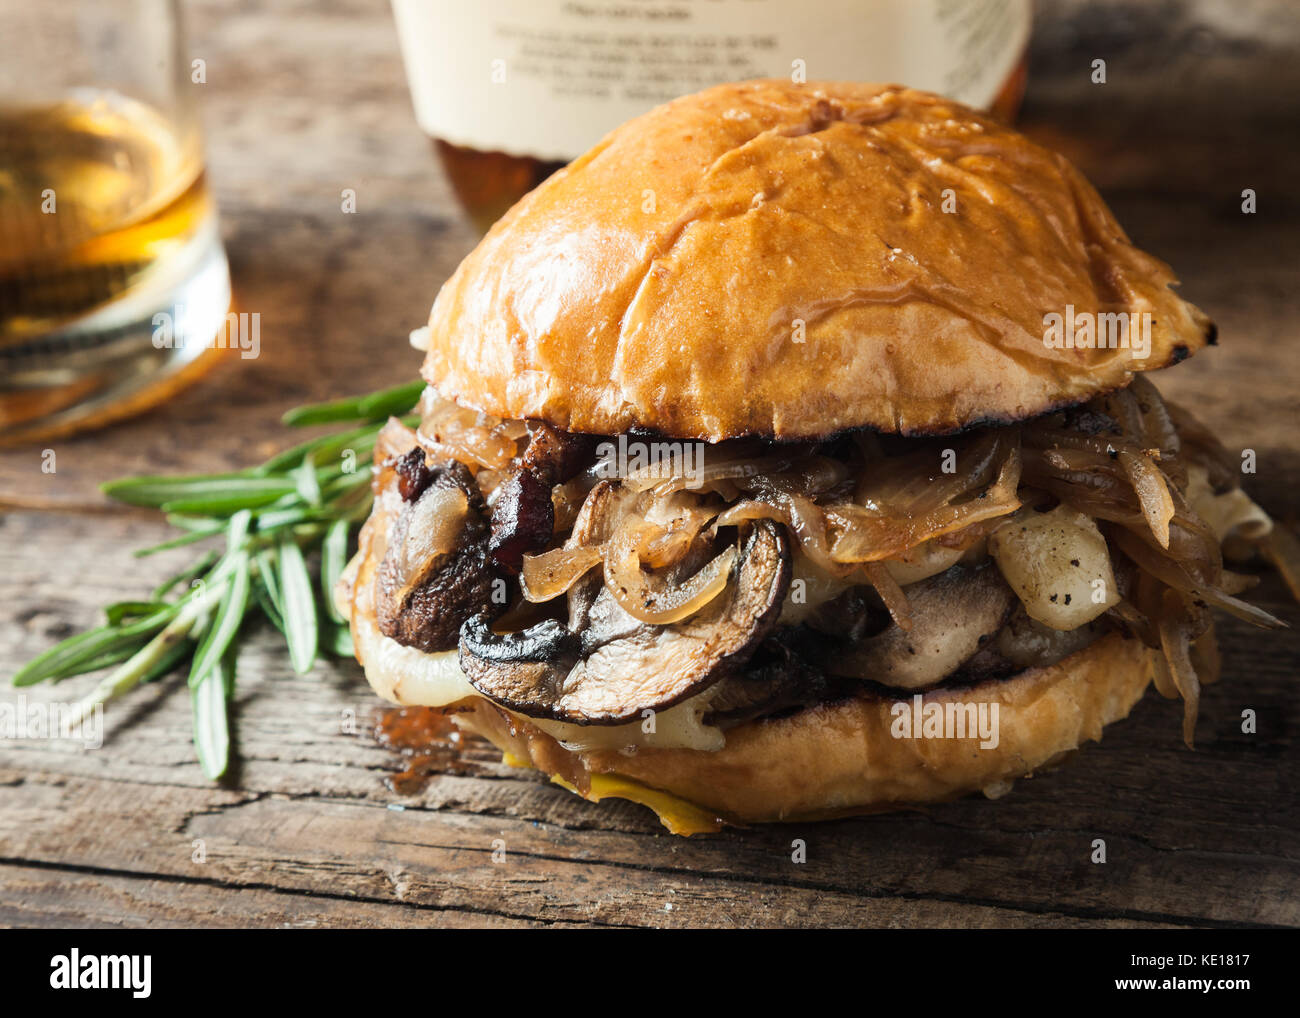 Burger with mushrooms, fried onions and cheese on rustic background - Stock Image